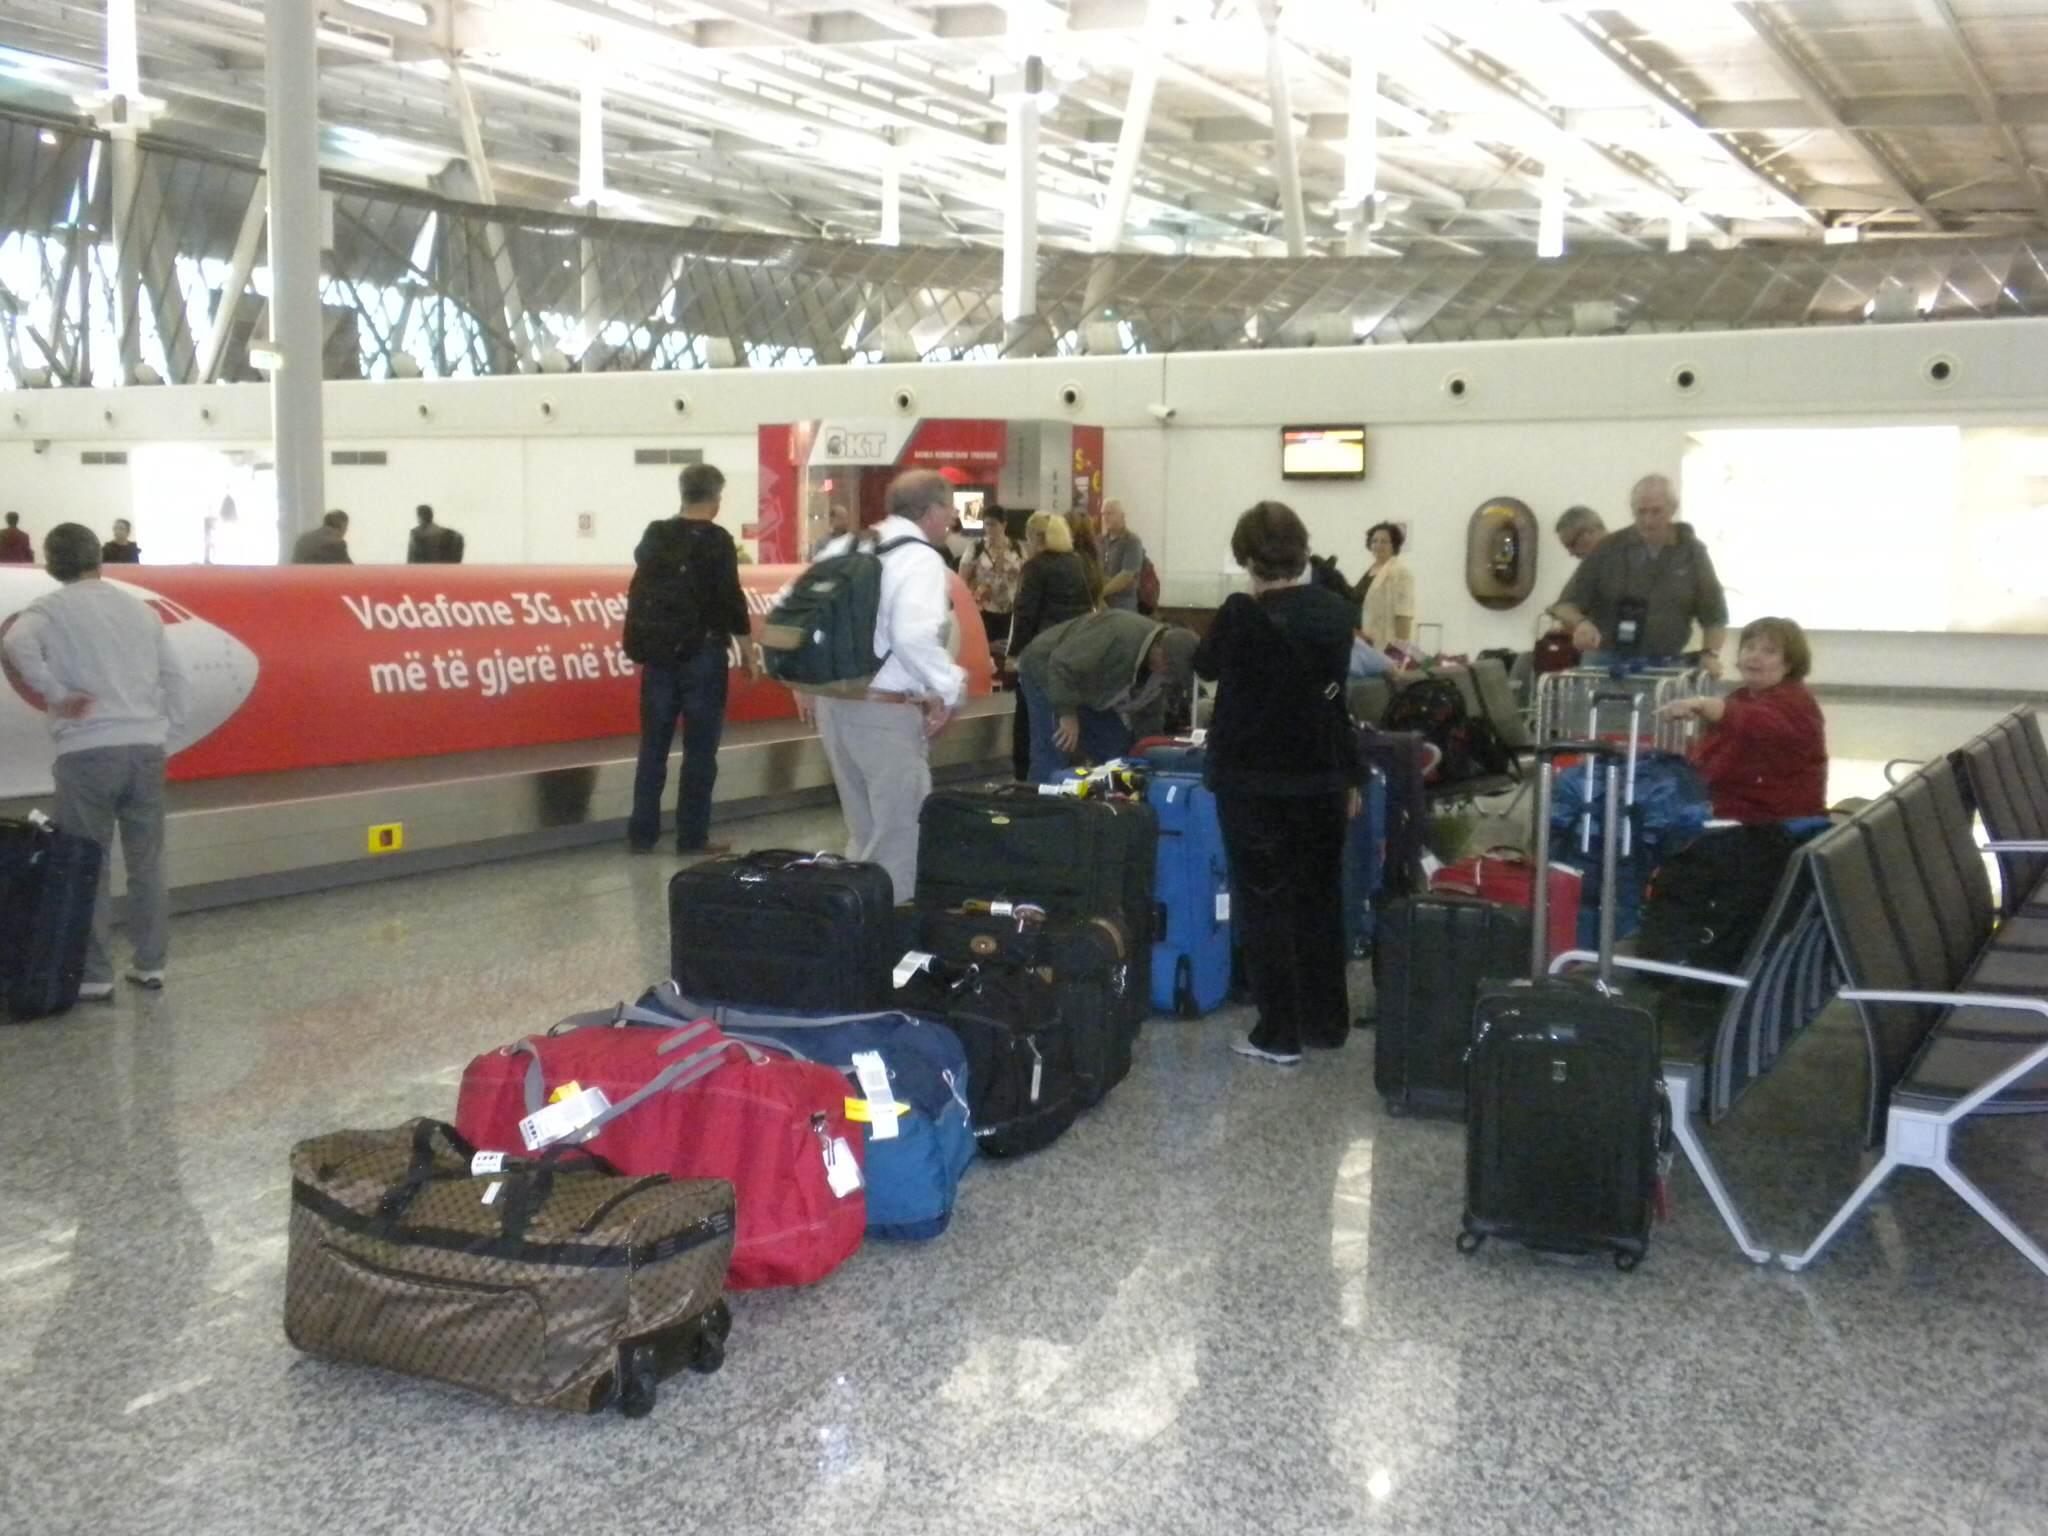 Gathering all of our luggage at the airport in Tirana...we were thrilled when all 14 pieces of luggage showed up!